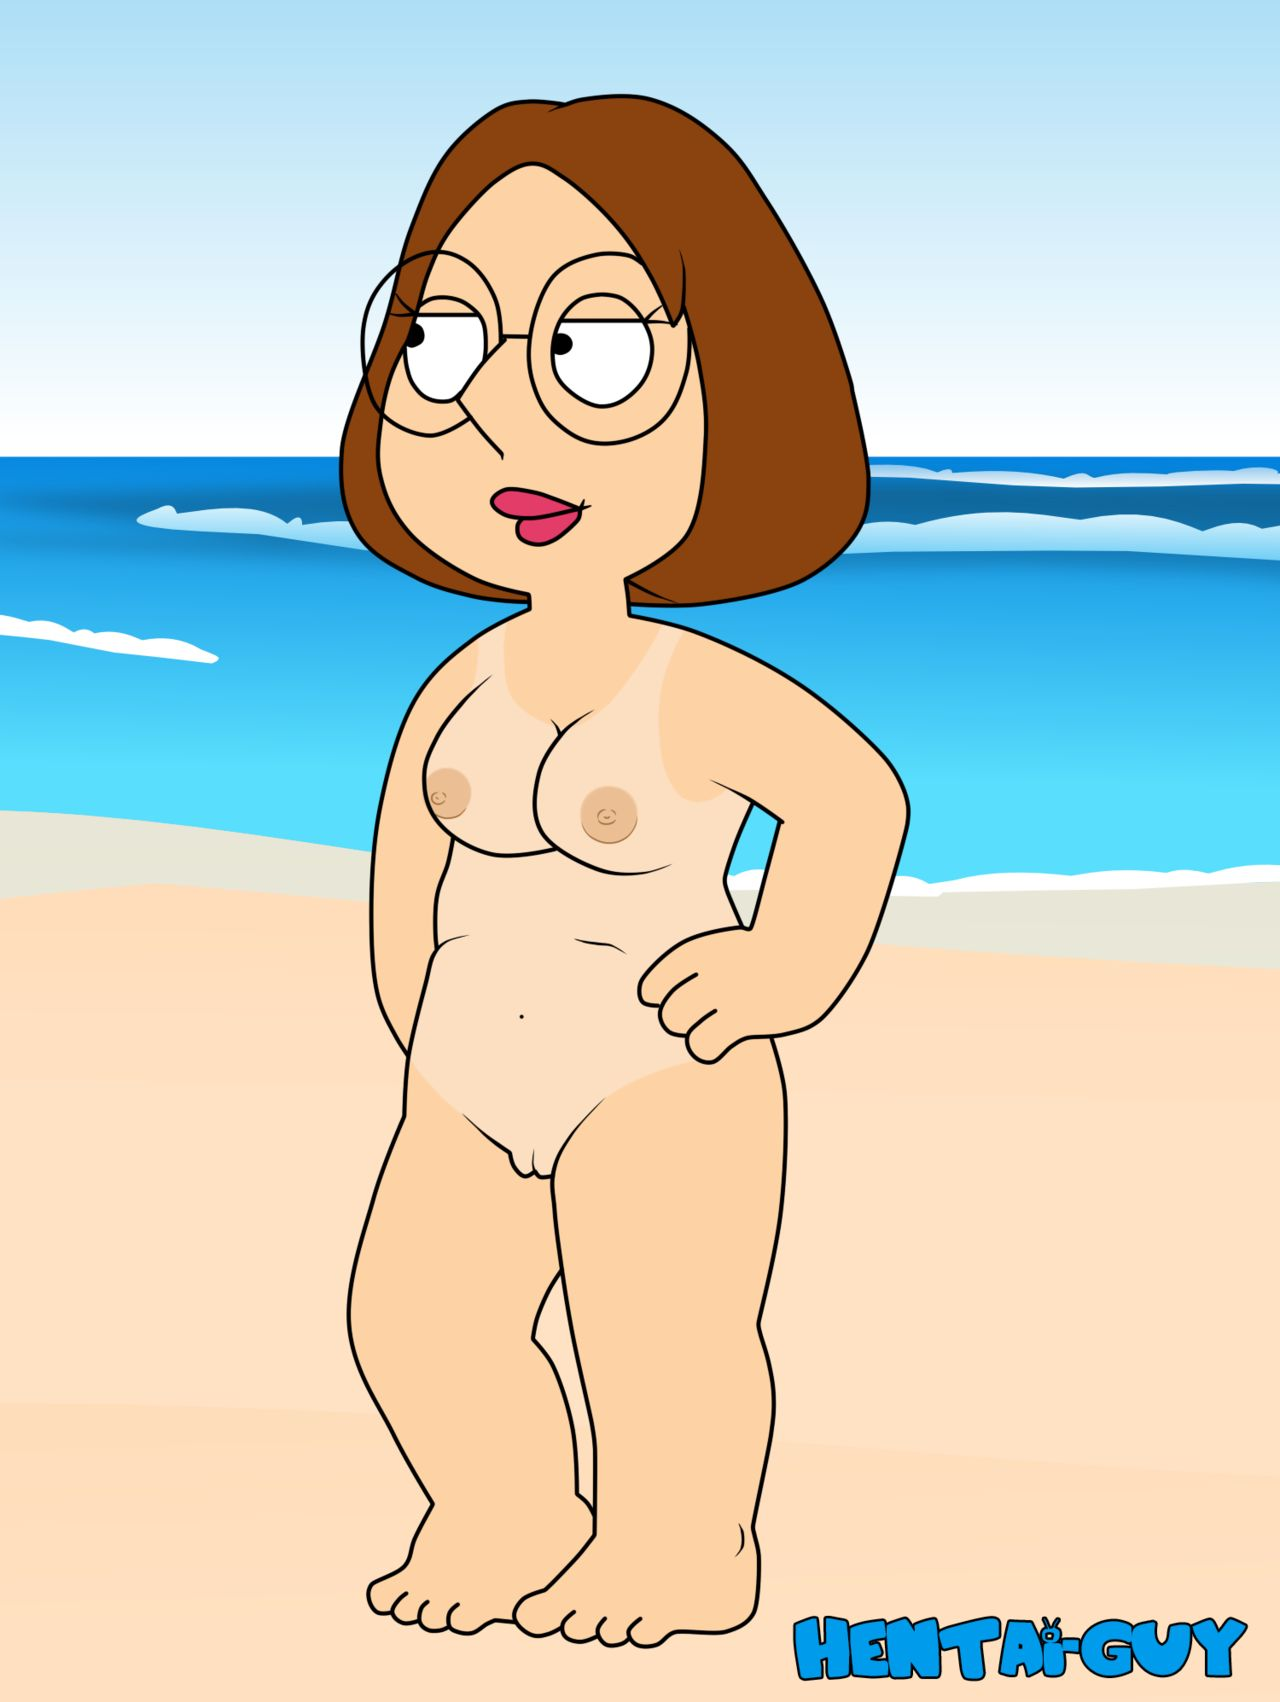 Family guy female characters nude